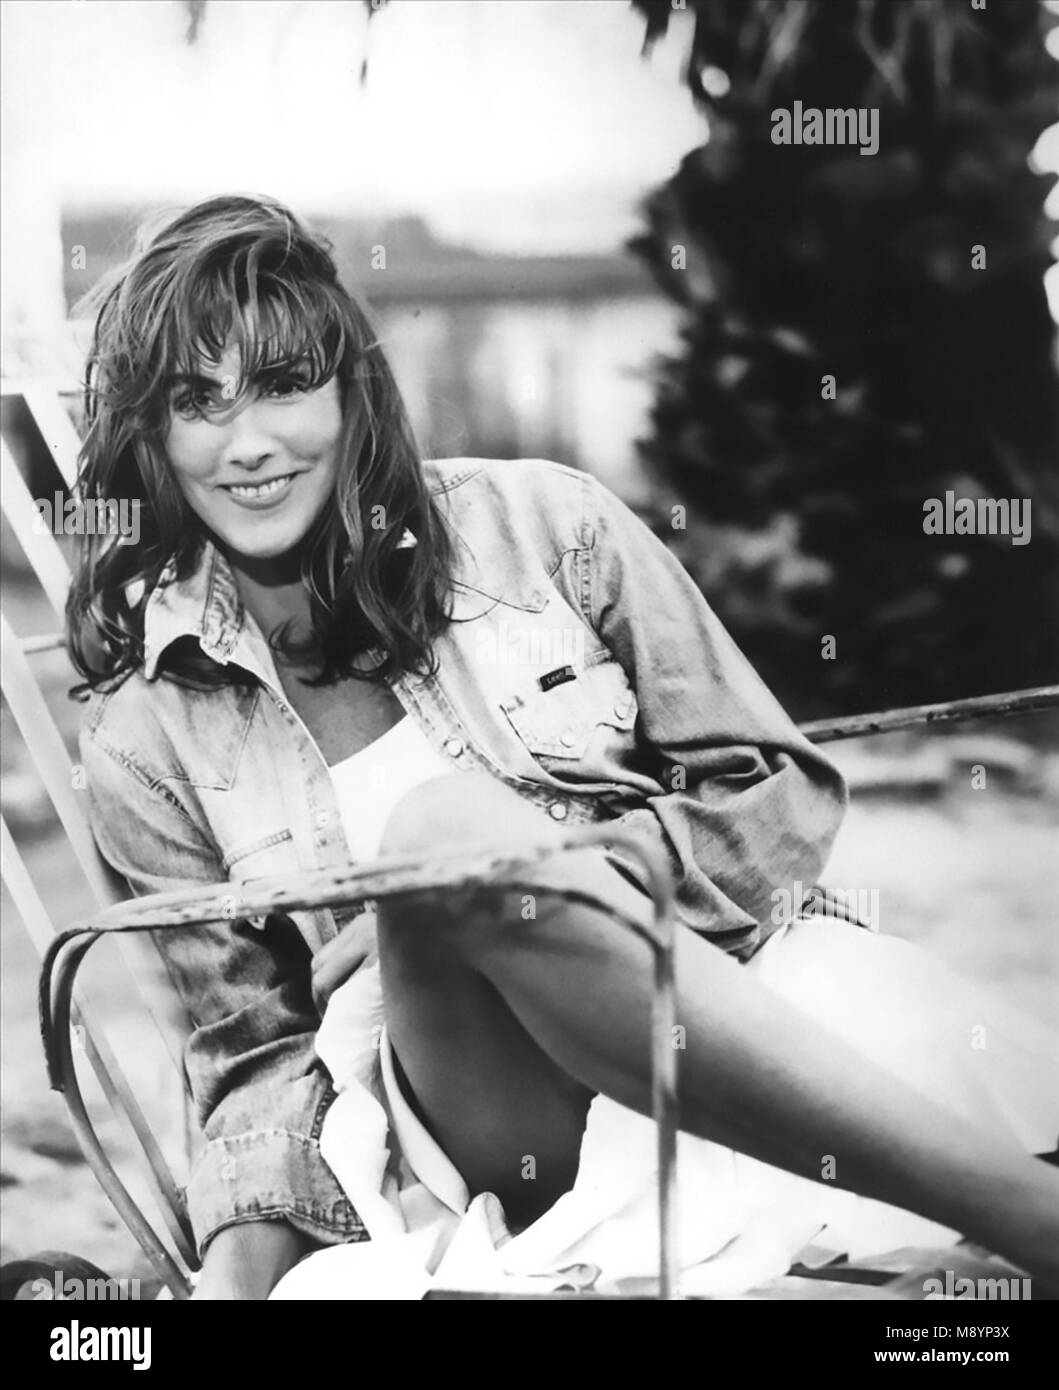 Laura brannigan promotional photo of american singer about 1980 stock image